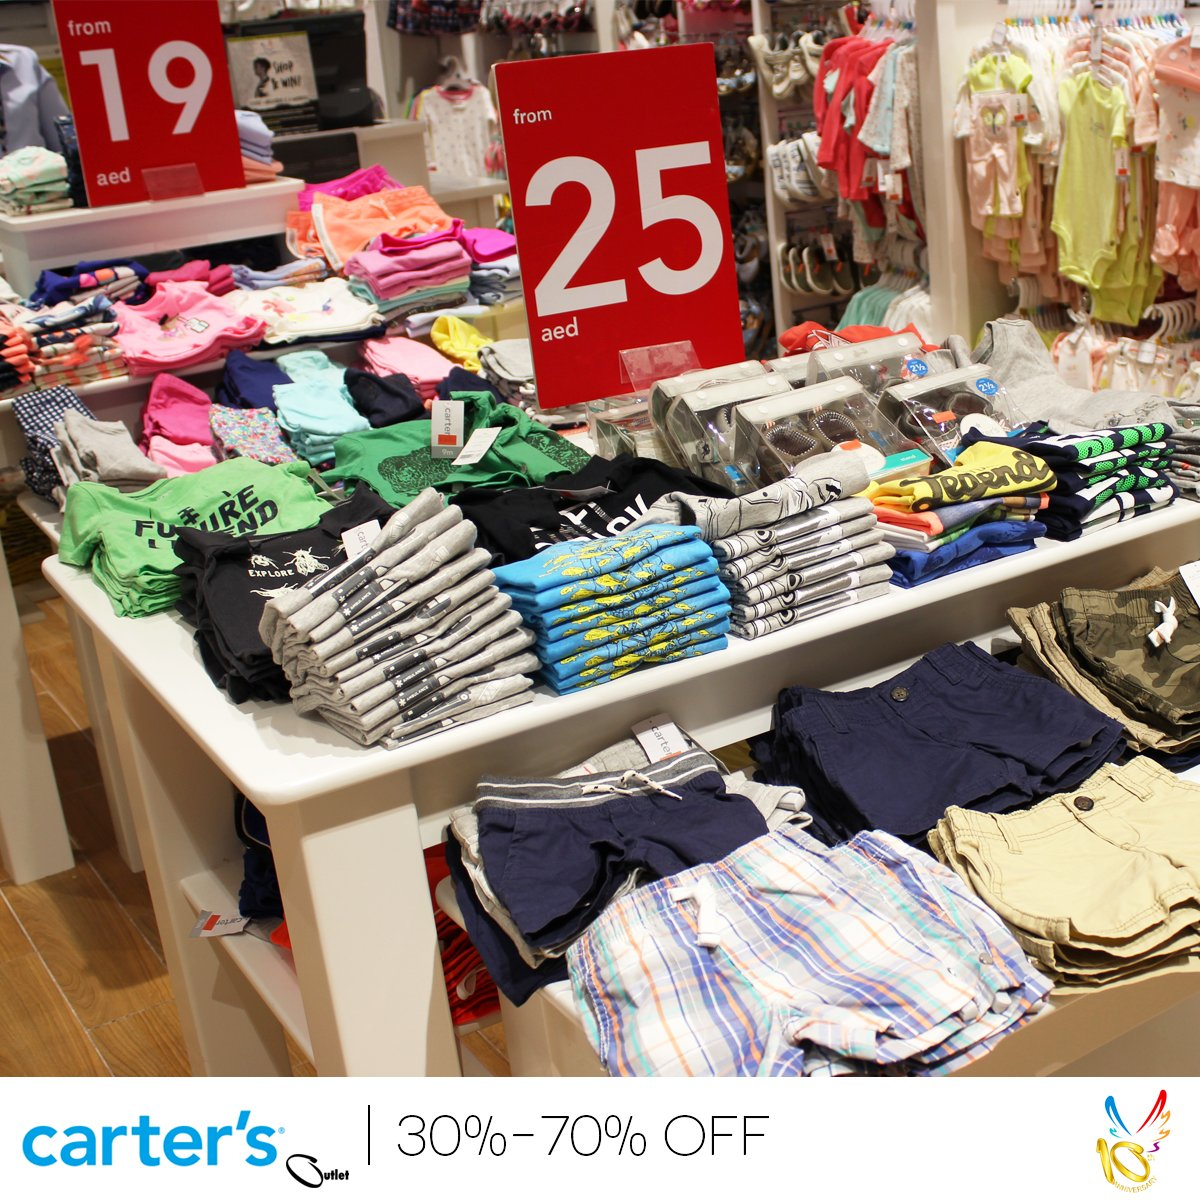 Dubai Outlet Mall On Twitter What Makes A Great Shopping